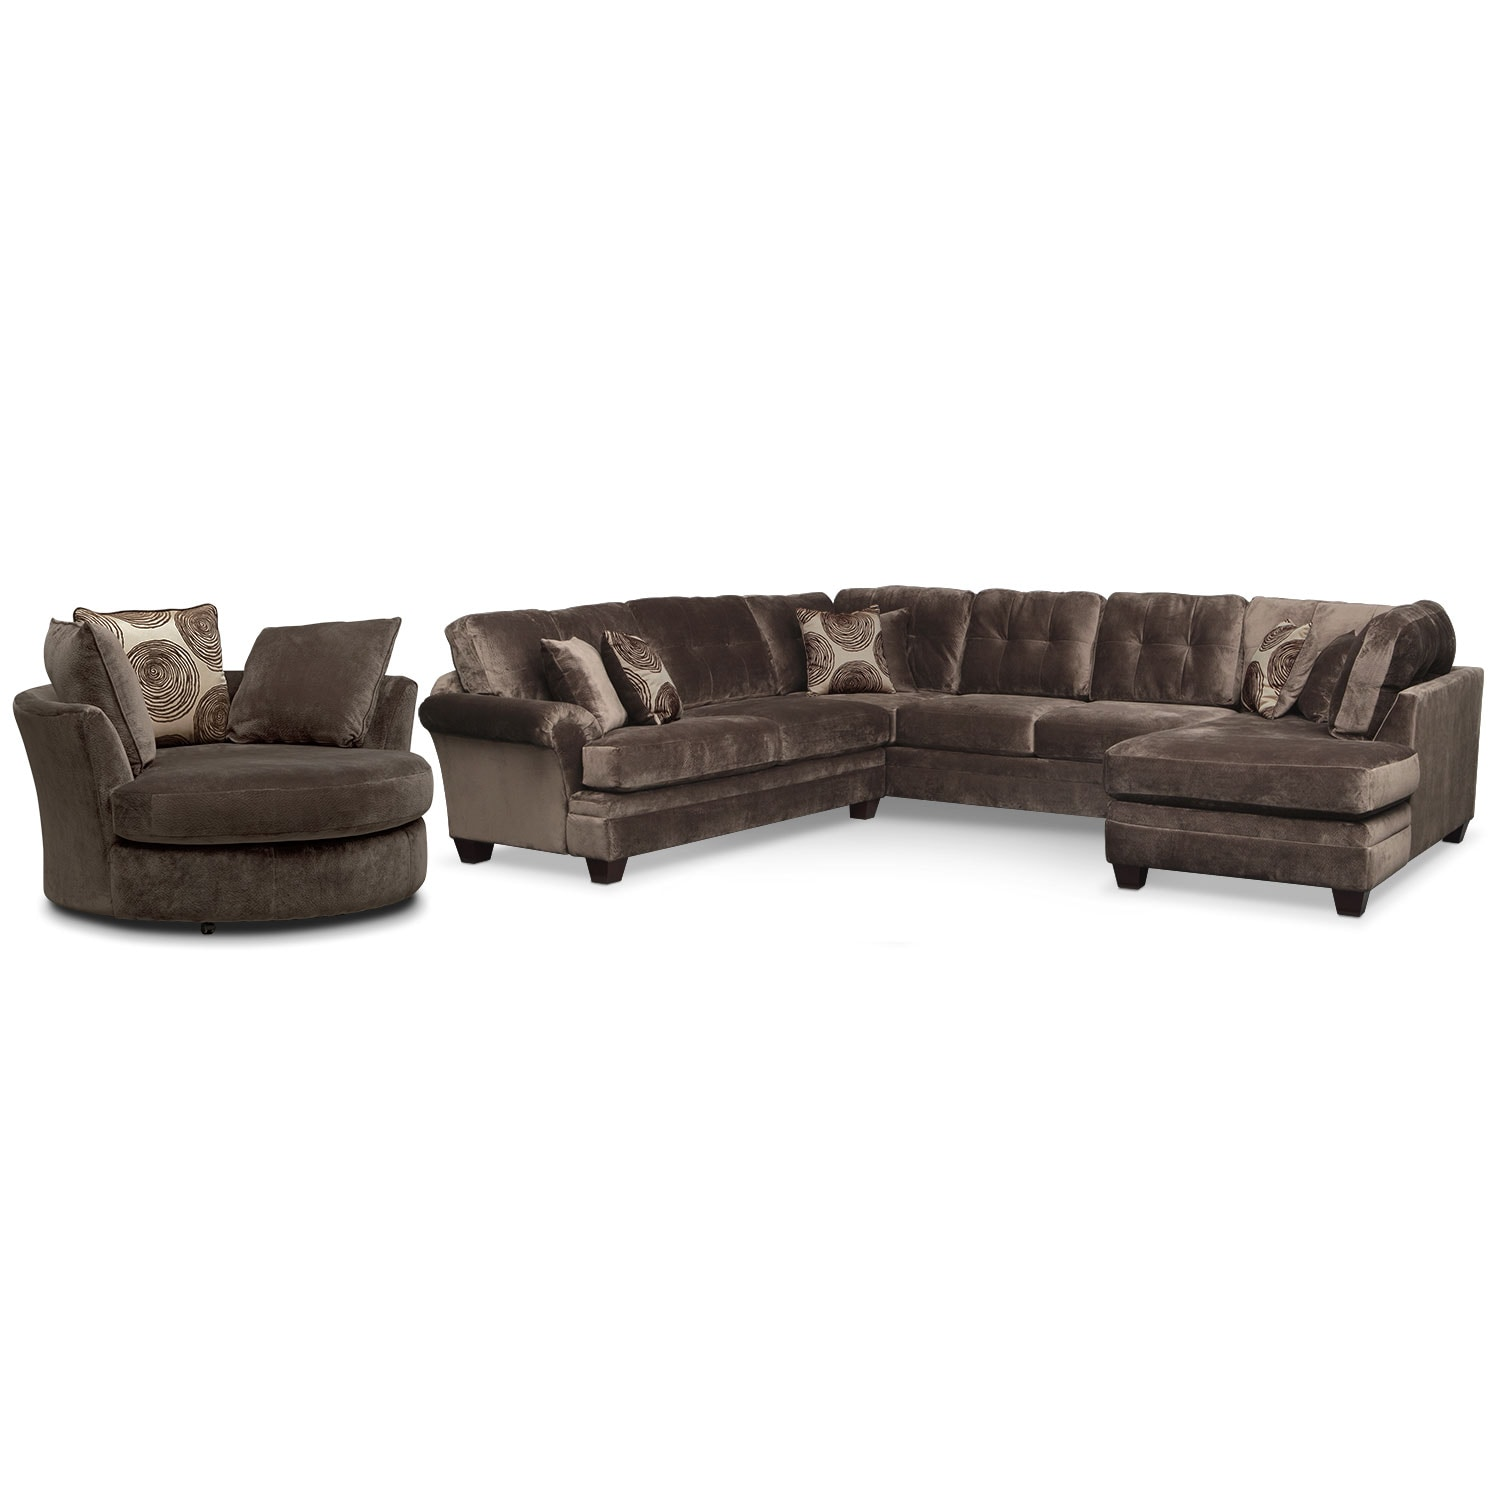 Living Room Furniture - Cordelle 3-Piece Sectional and Swivel Chair Set - Chocolate